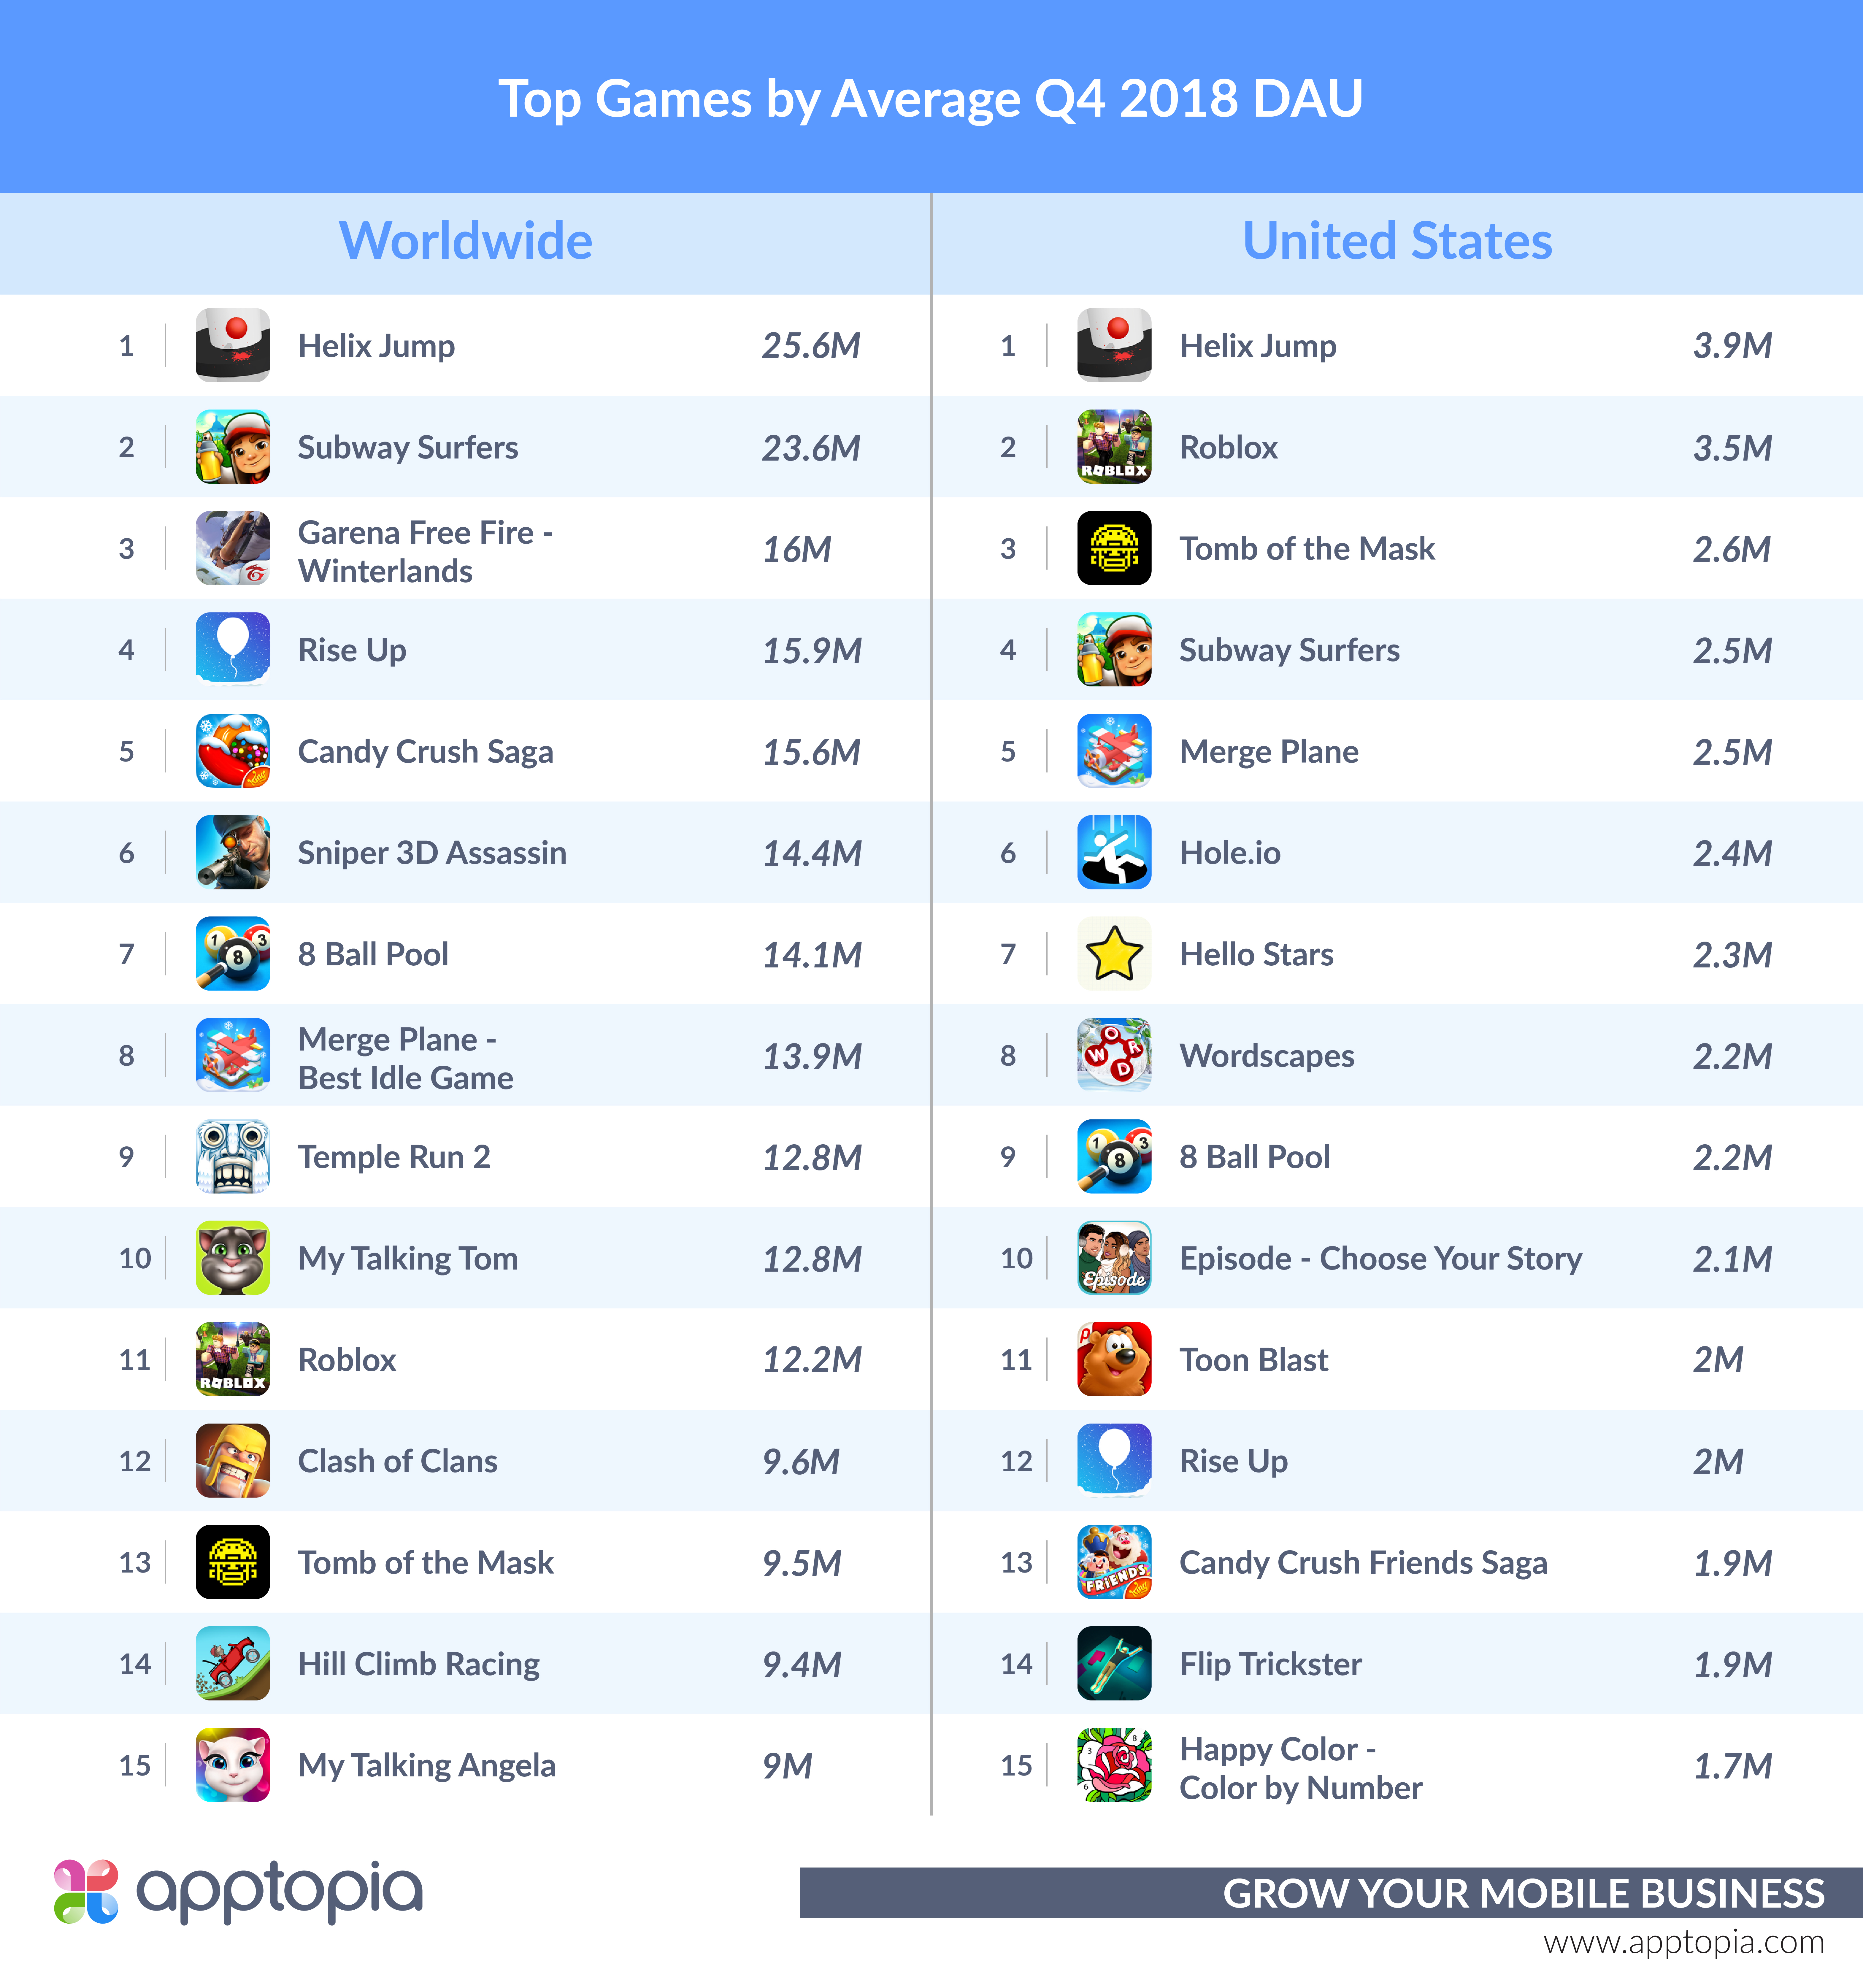 Q4 Avg. DAU Games